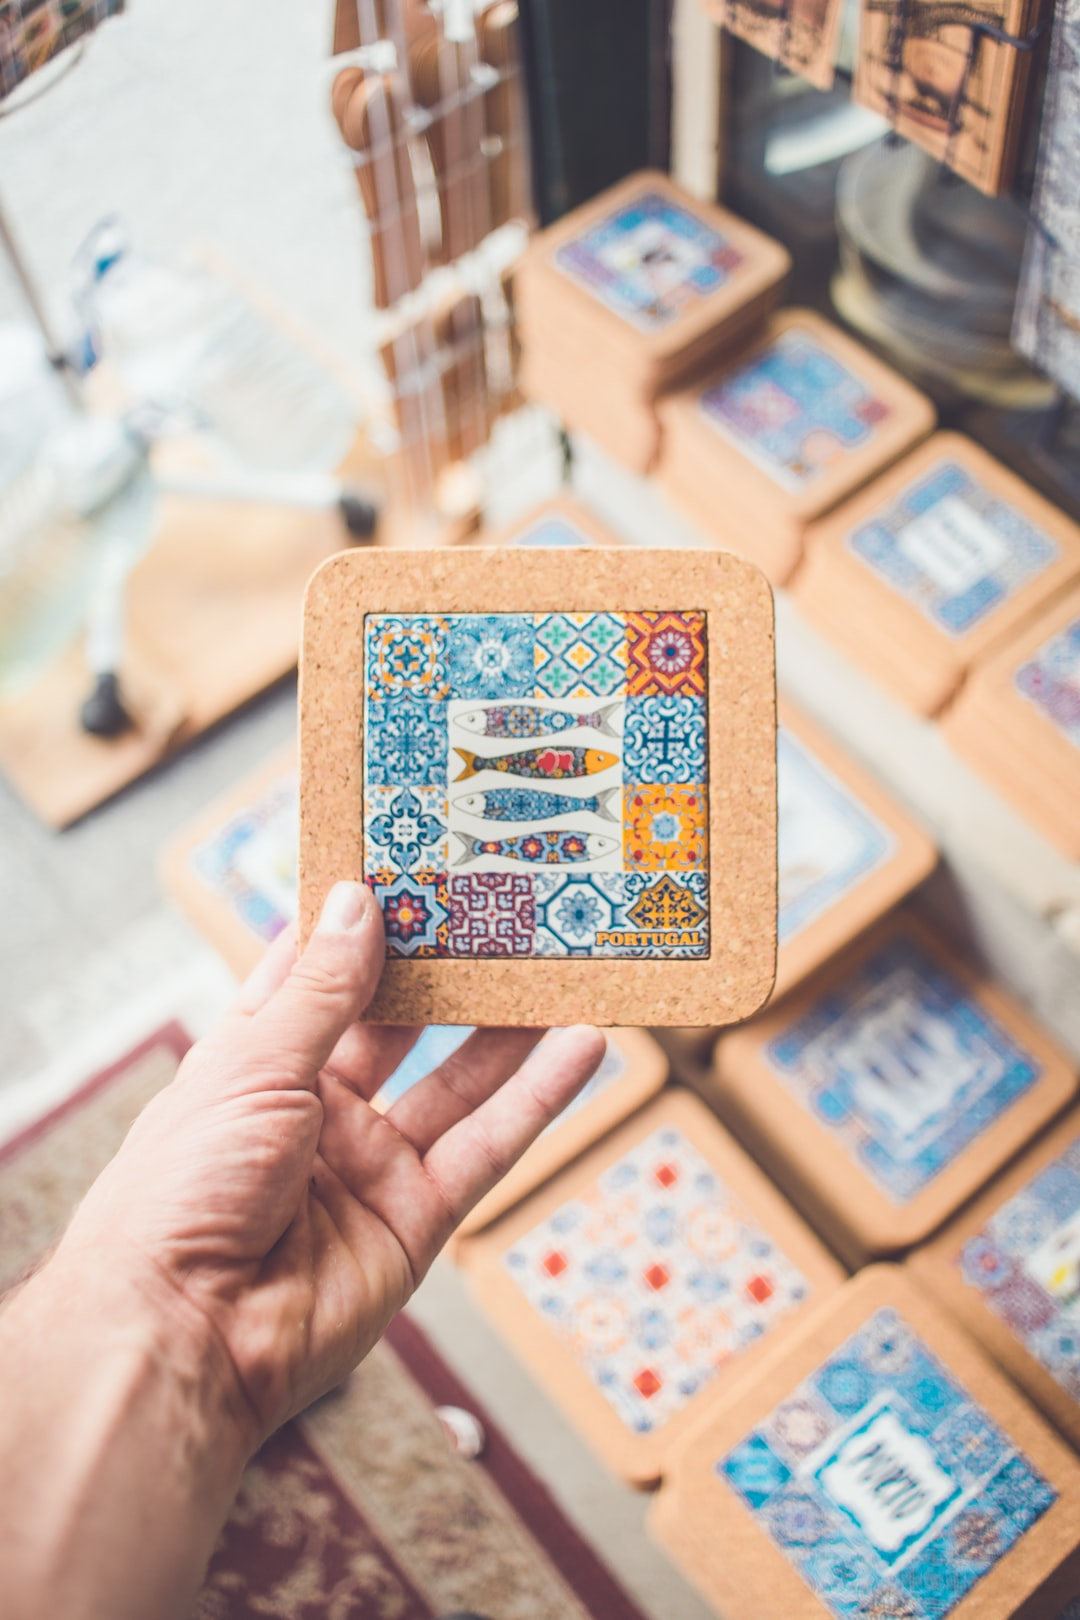 Travel&Shopping: 10 most collected souvenirs around the world